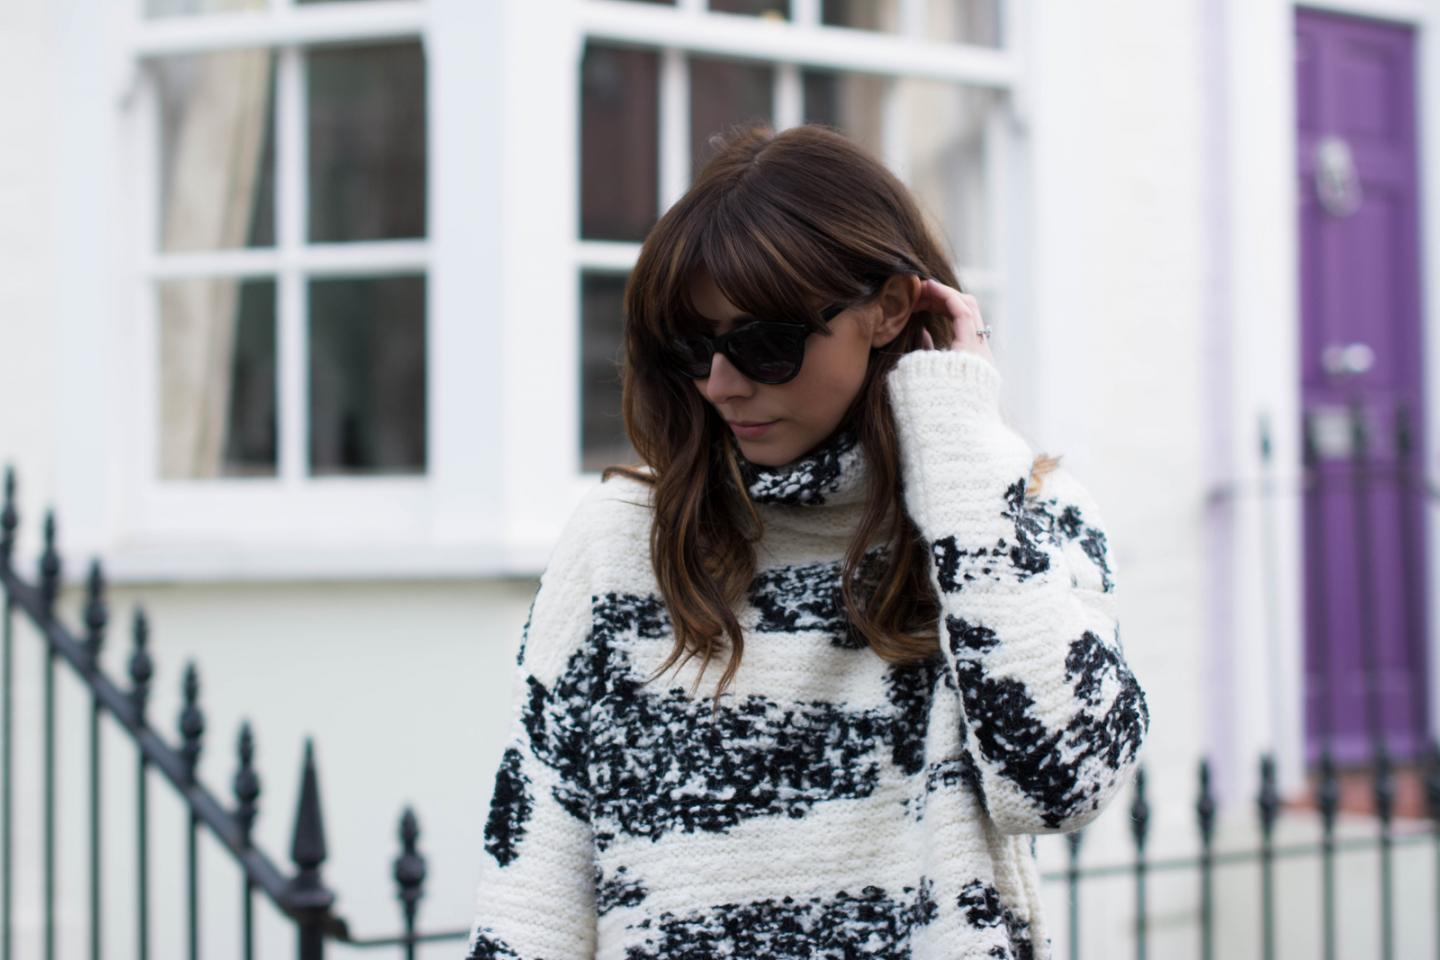 EJSTYLE - Zara fringe black white jumper, Isabel Marant Inspired look, OOTD, fashion blogger